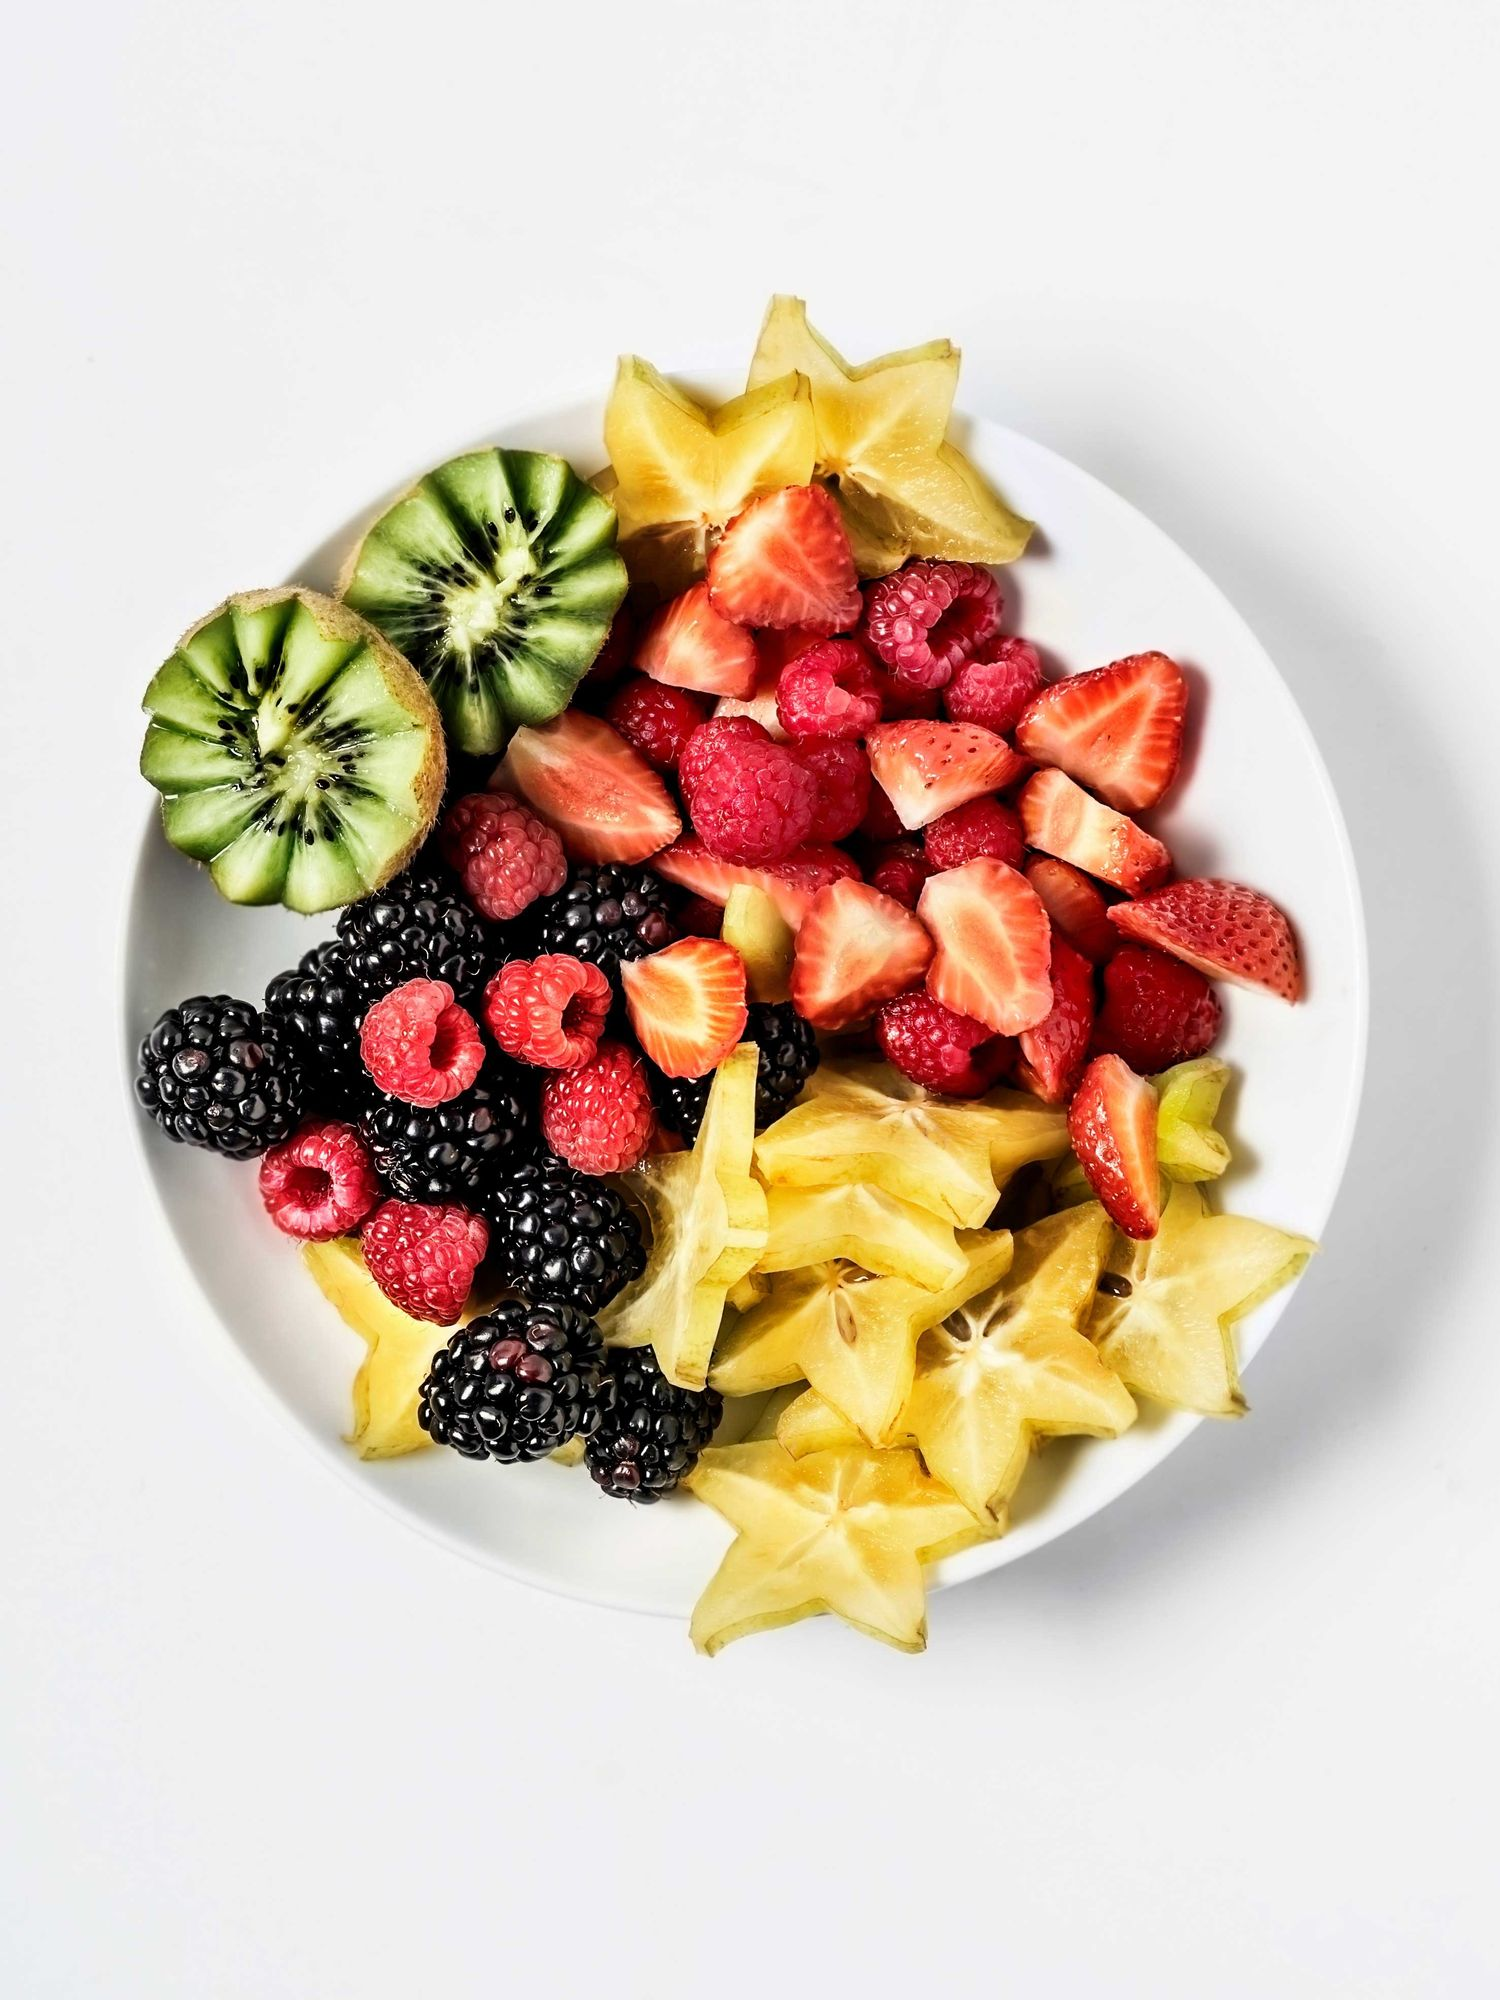 Stock image of a bowl of fruit.